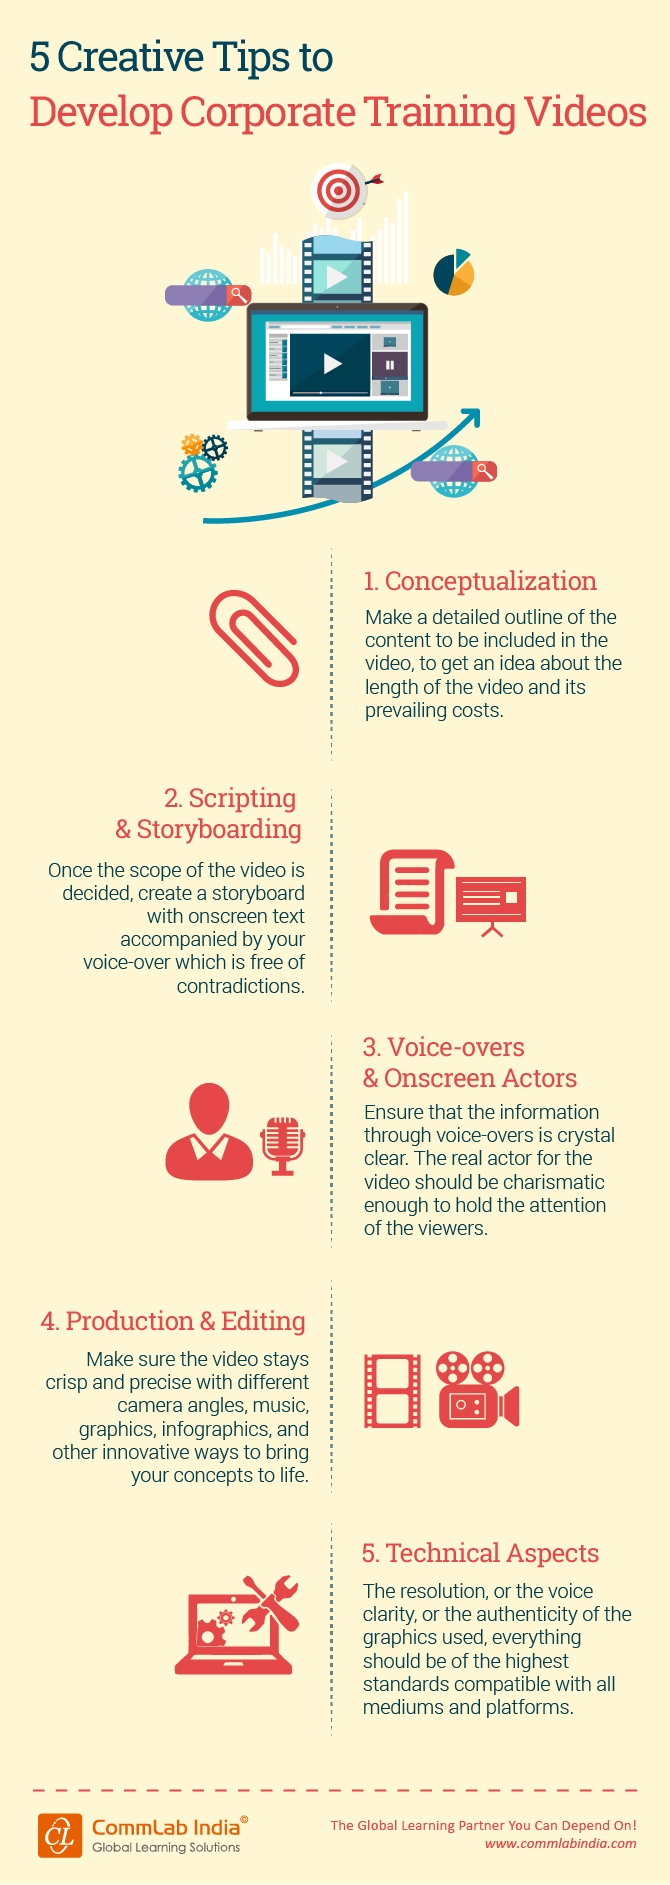 5 Creative Tips to Develop Corporate Training Videos [Infographic]